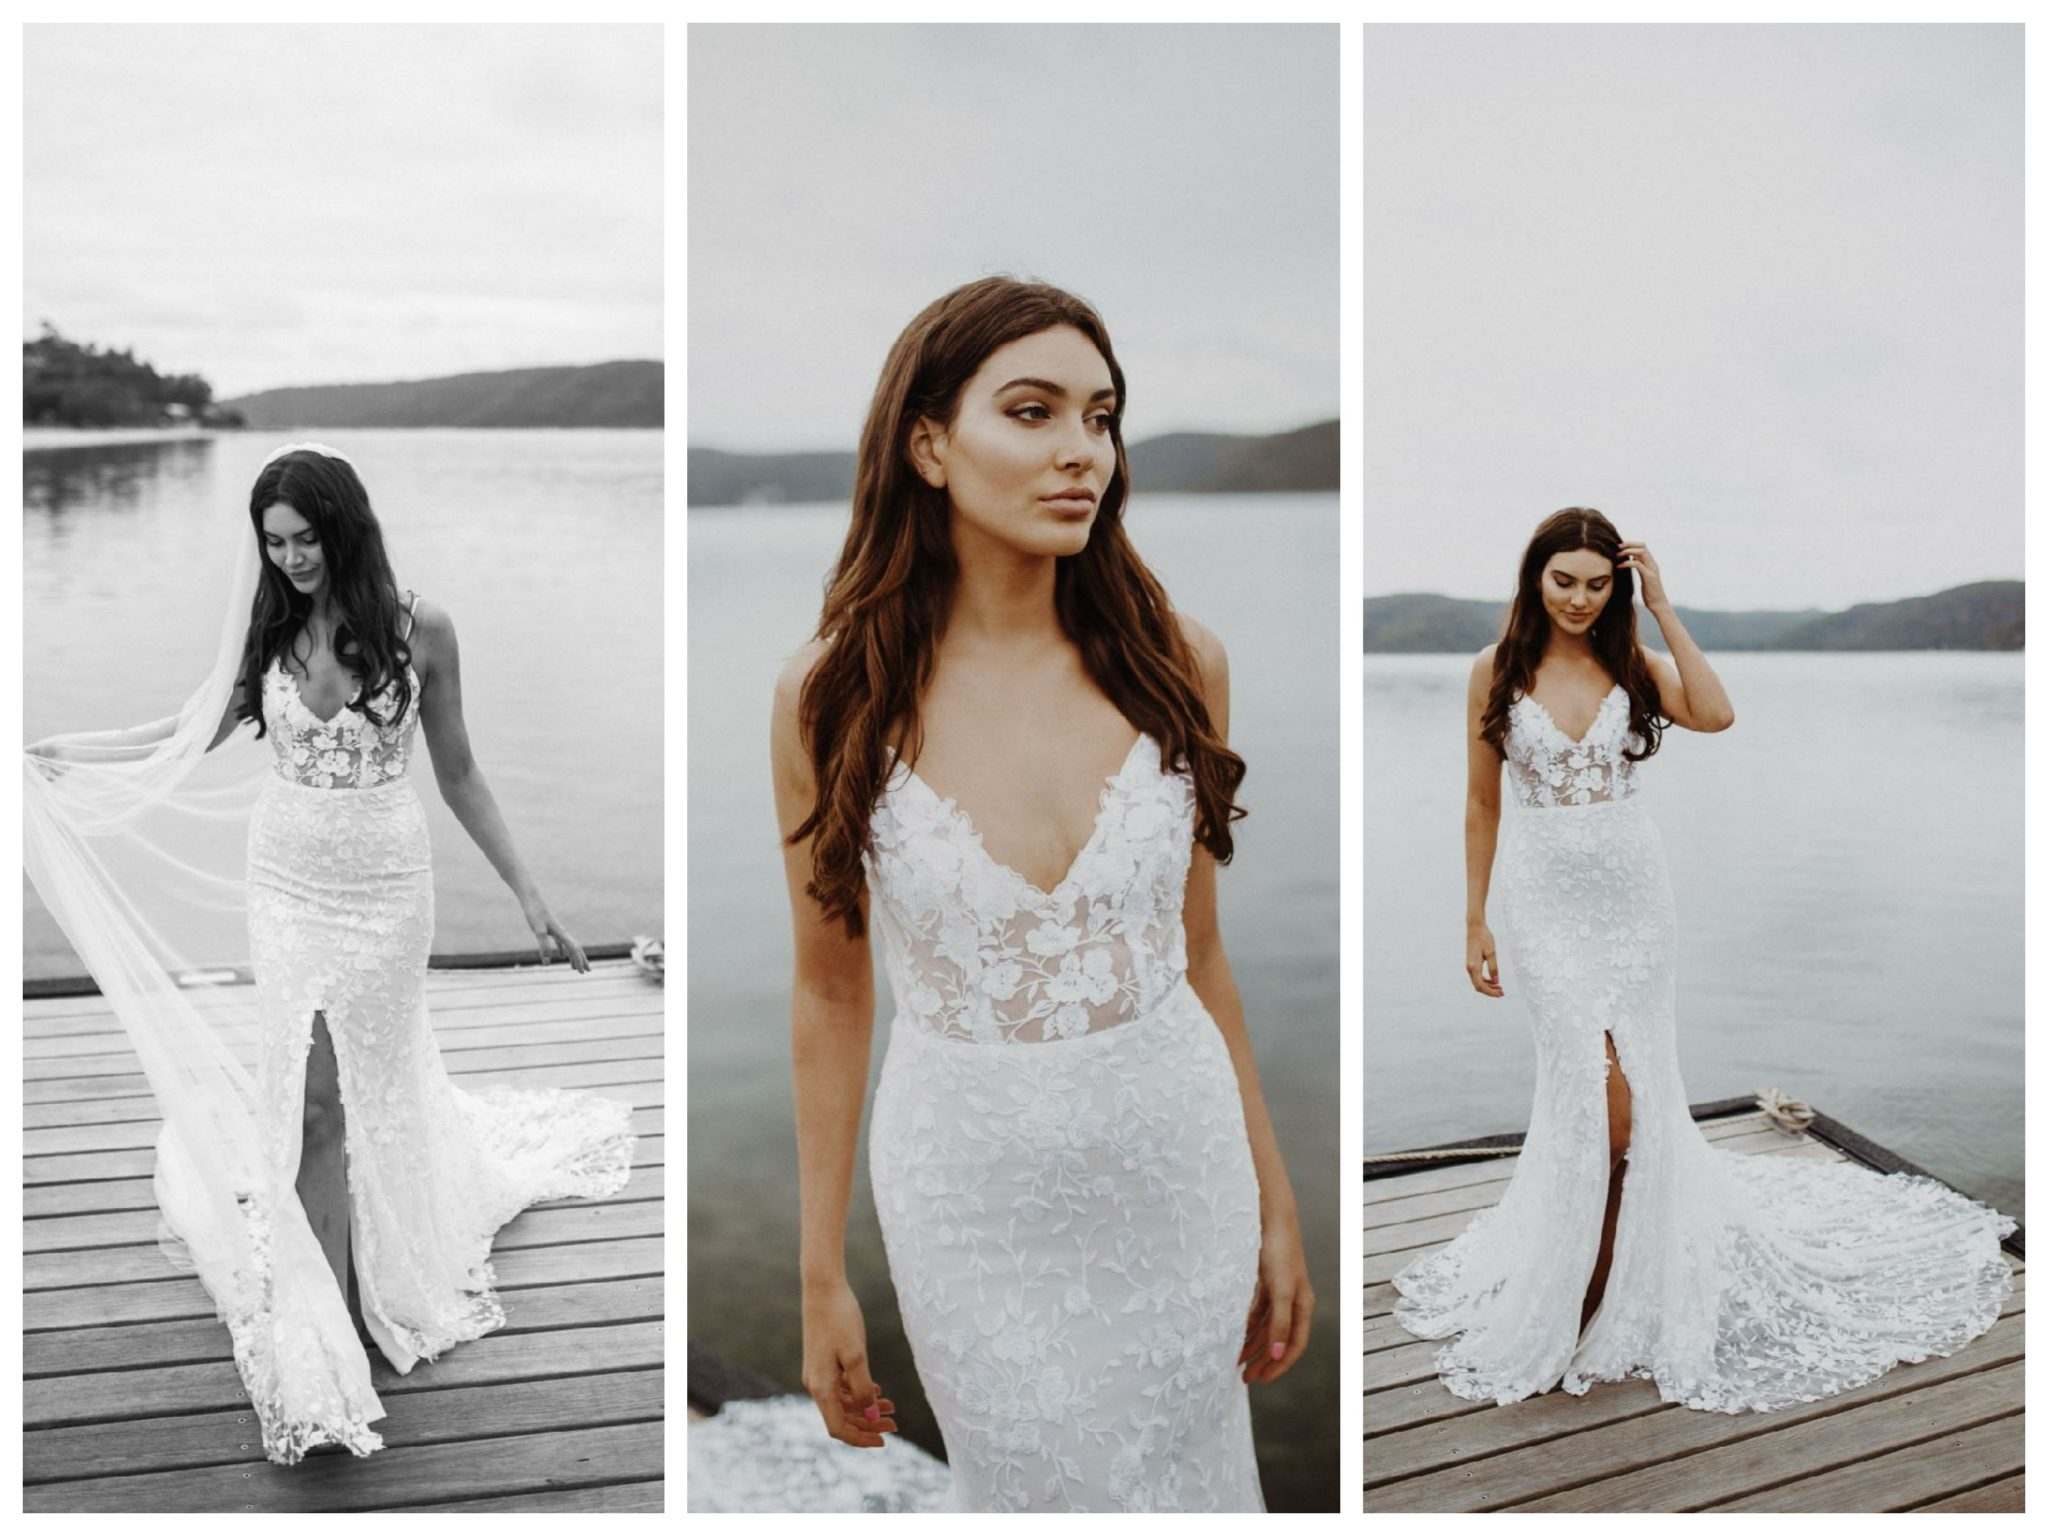 Wedding dresses for broad shoulders by top Los Angeles bridal shop, Love and Lace Bridal Salon: Emmy Mae Bridal's Bec